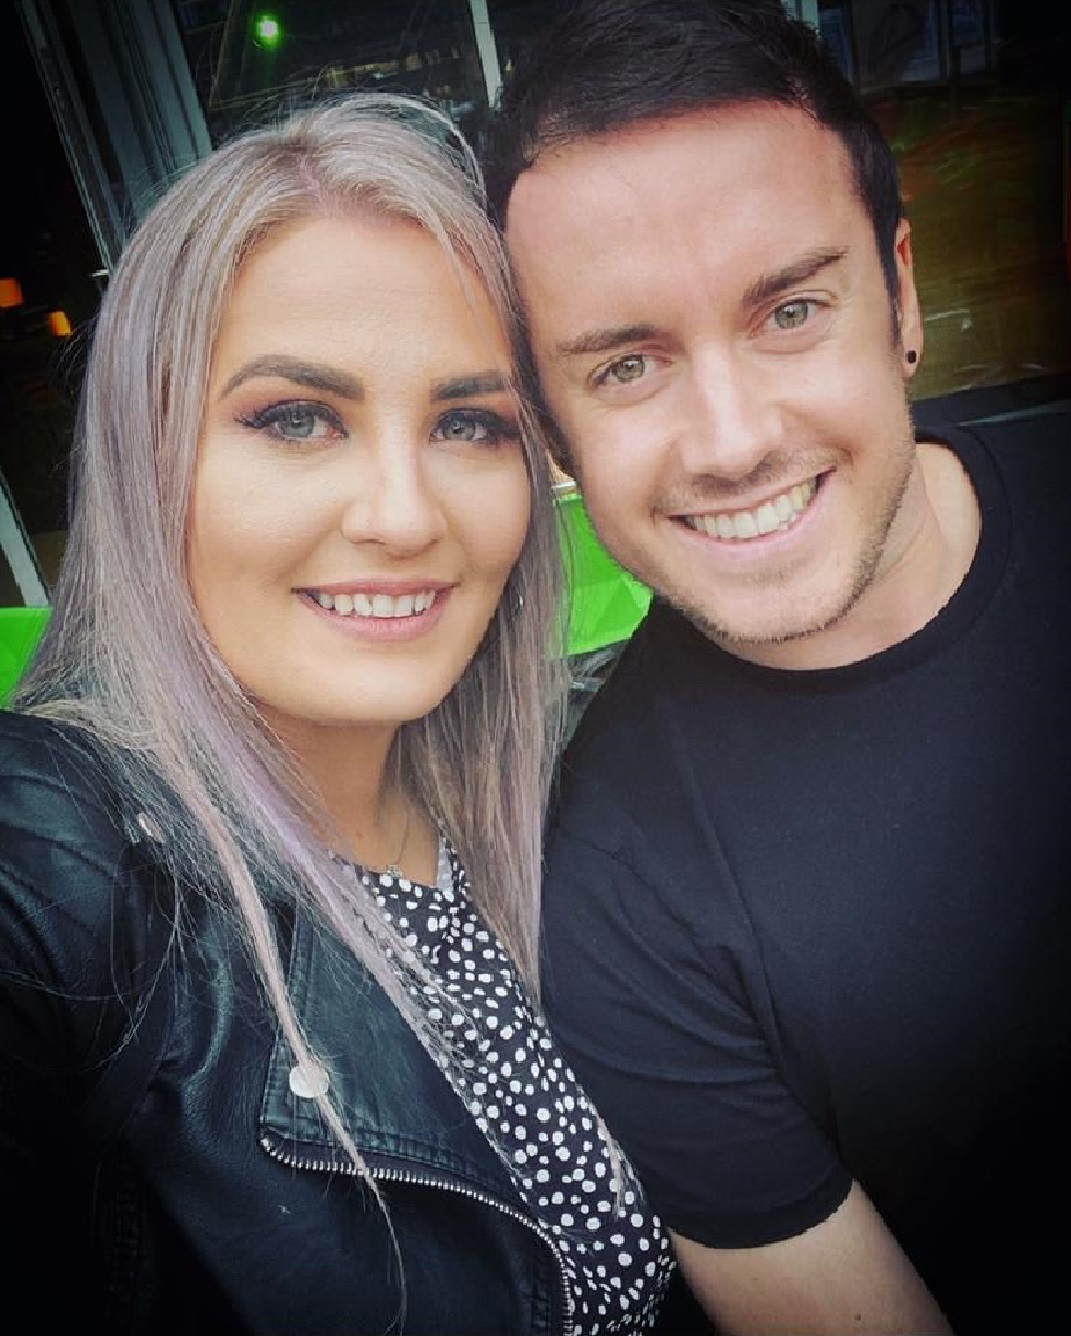 Jack Twigg and his fiancee Rhiannon Craddock